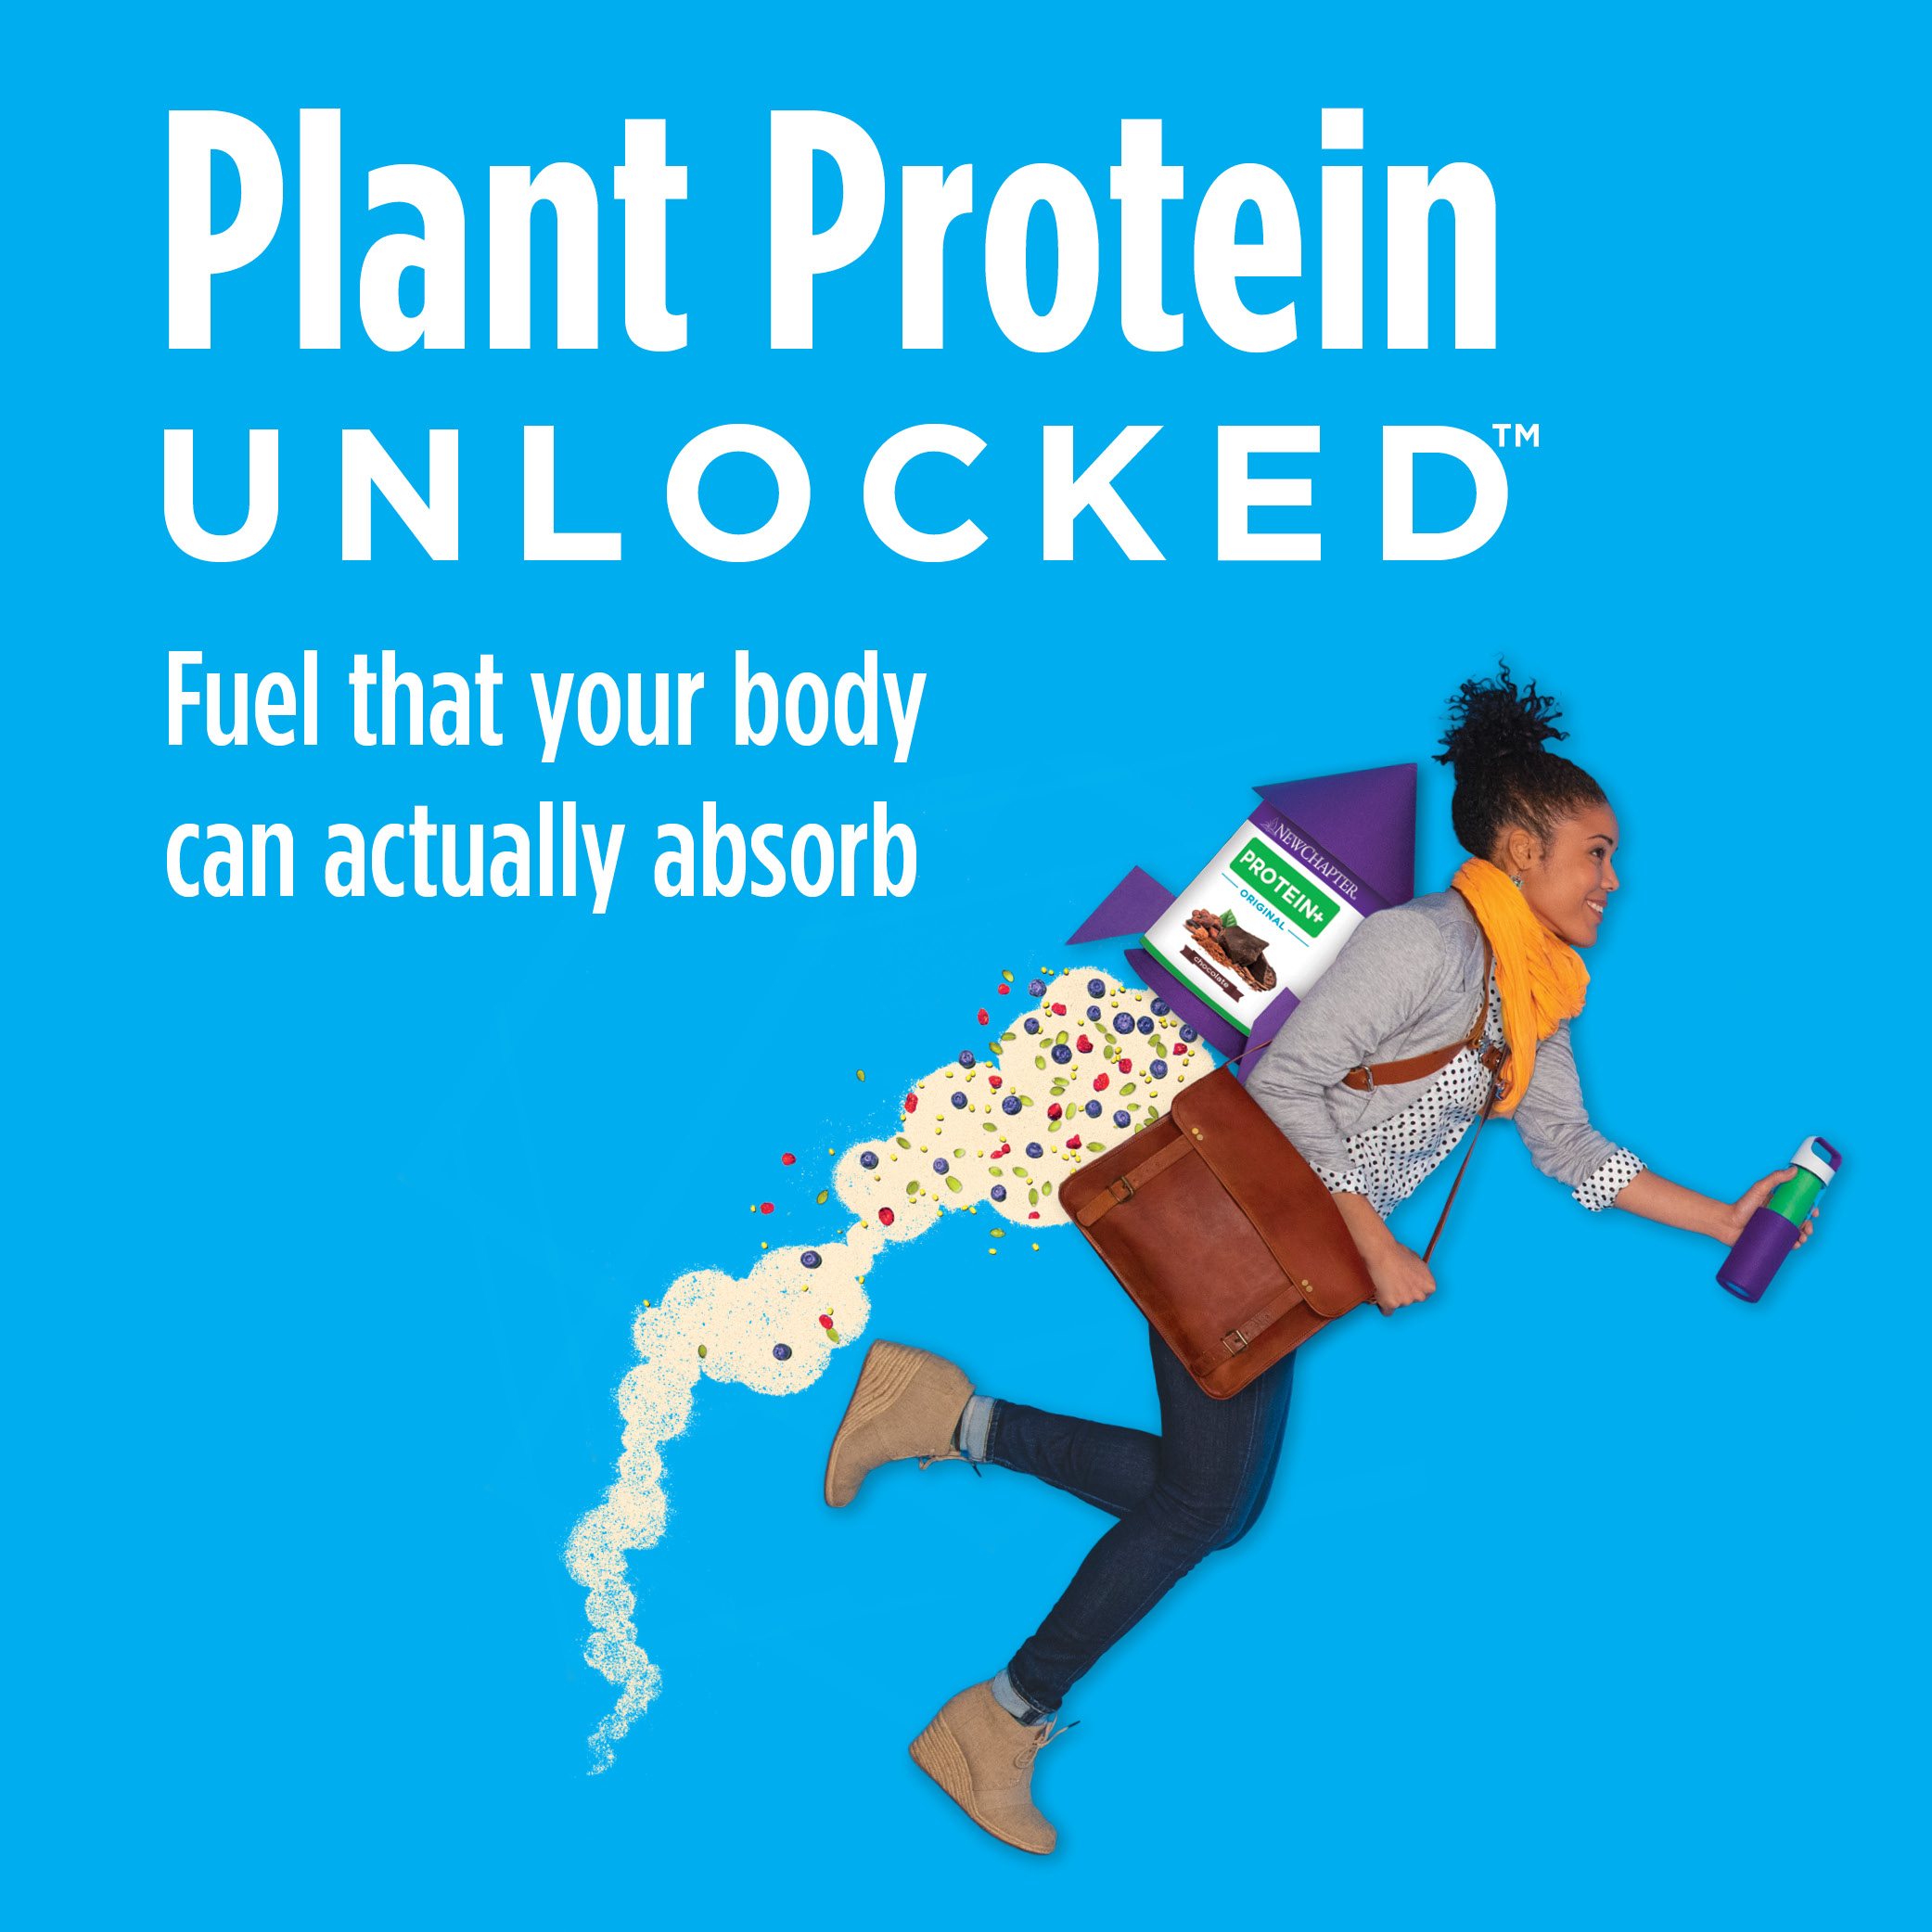 Plant Protein Unlocked: Fuel thay your body can actually absorb.